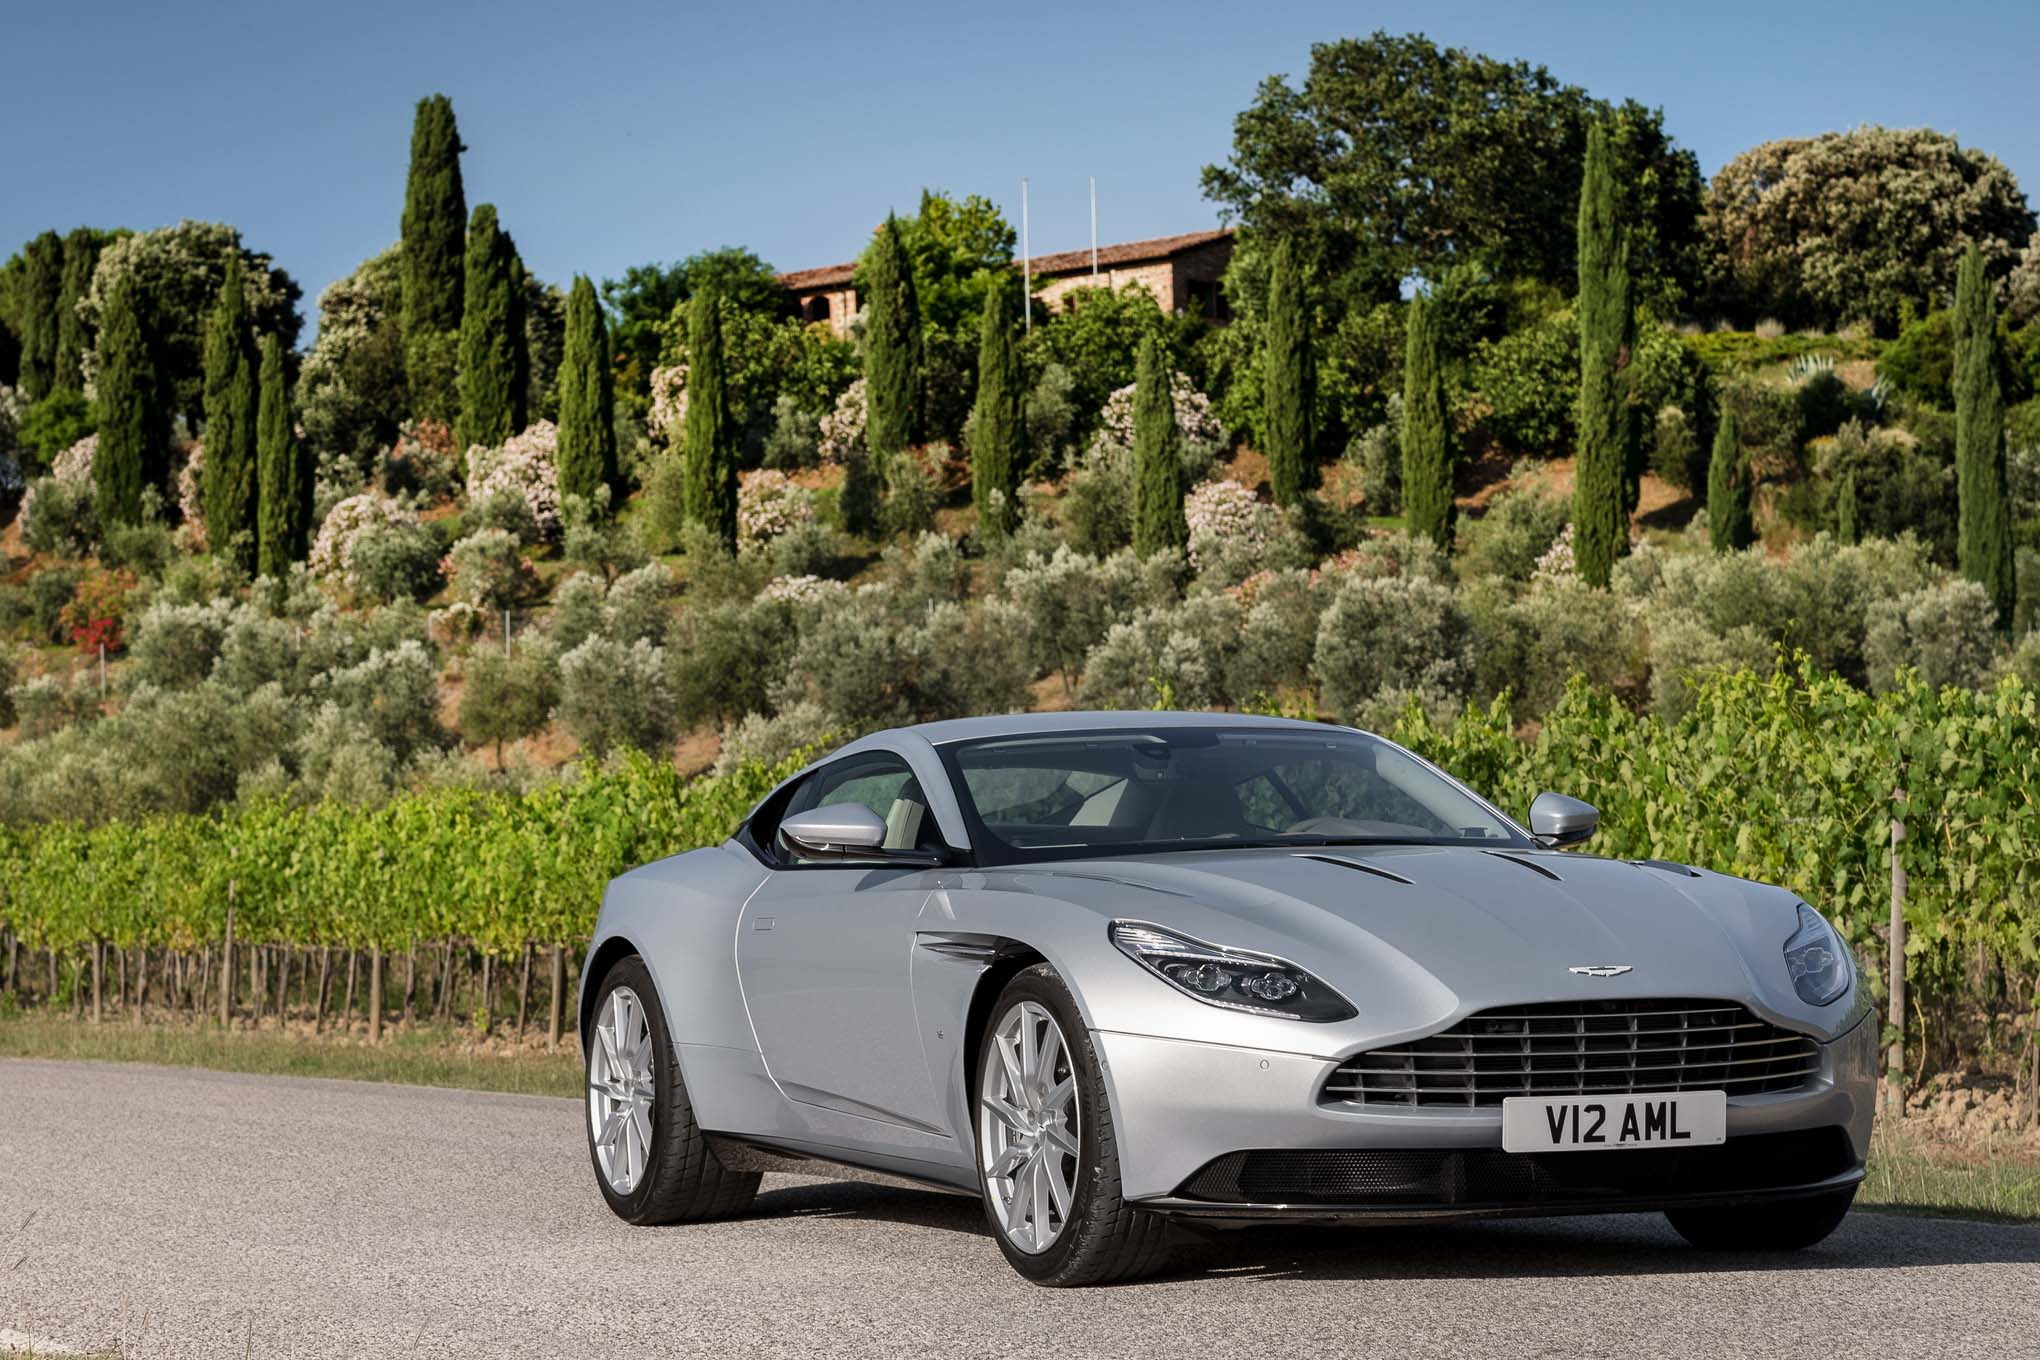 2017 aston martin db11 first drive automobile magazine. Black Bedroom Furniture Sets. Home Design Ideas